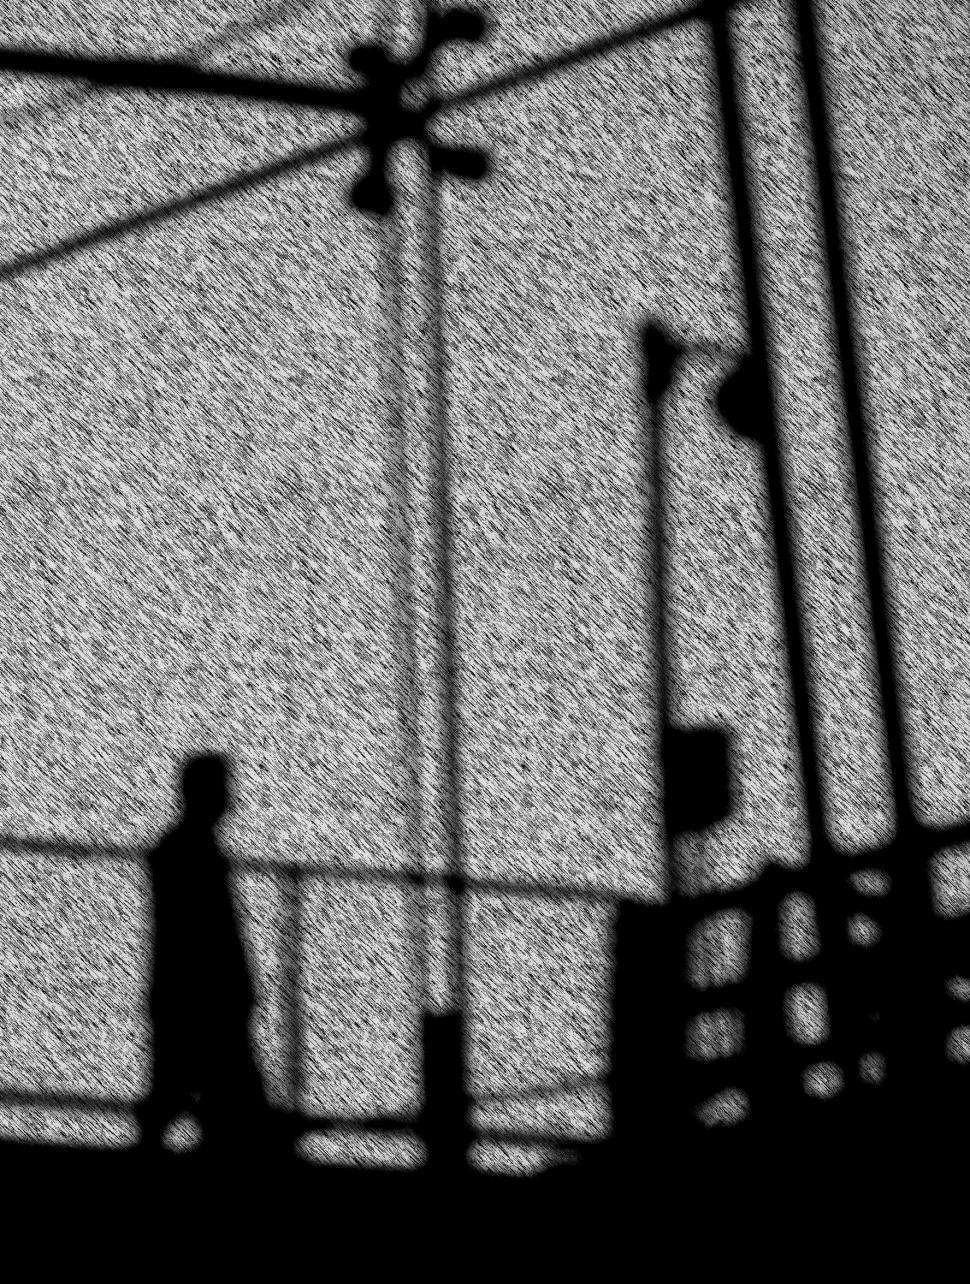 Walking Man Silhouette Sketch Effect